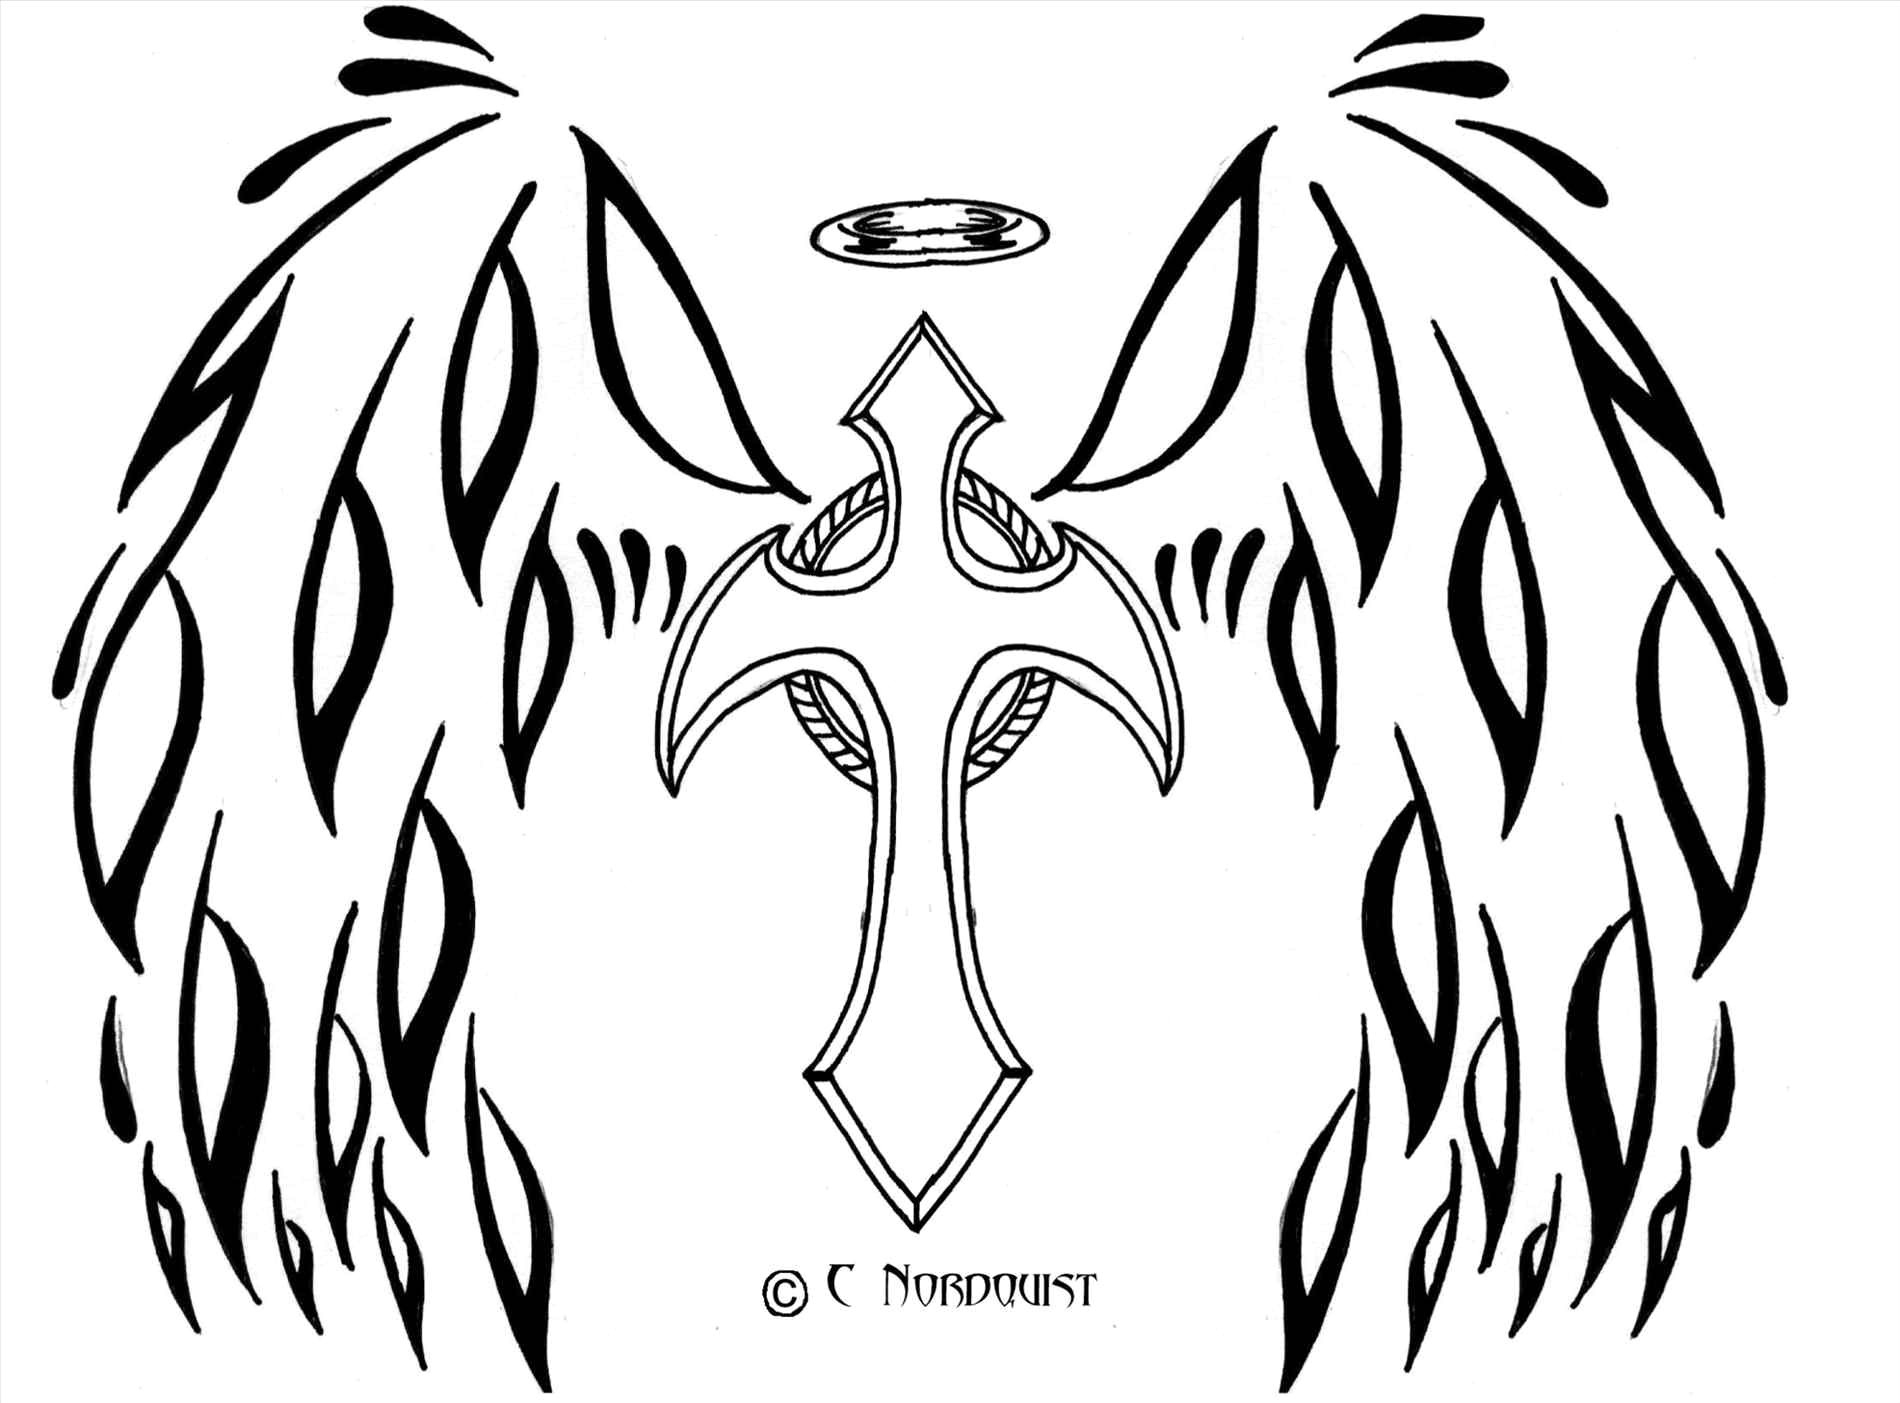 Roses And Hearts Coloring Pages Adult Hearts With Wings Coloring Pages To Print Of And Roses Heart